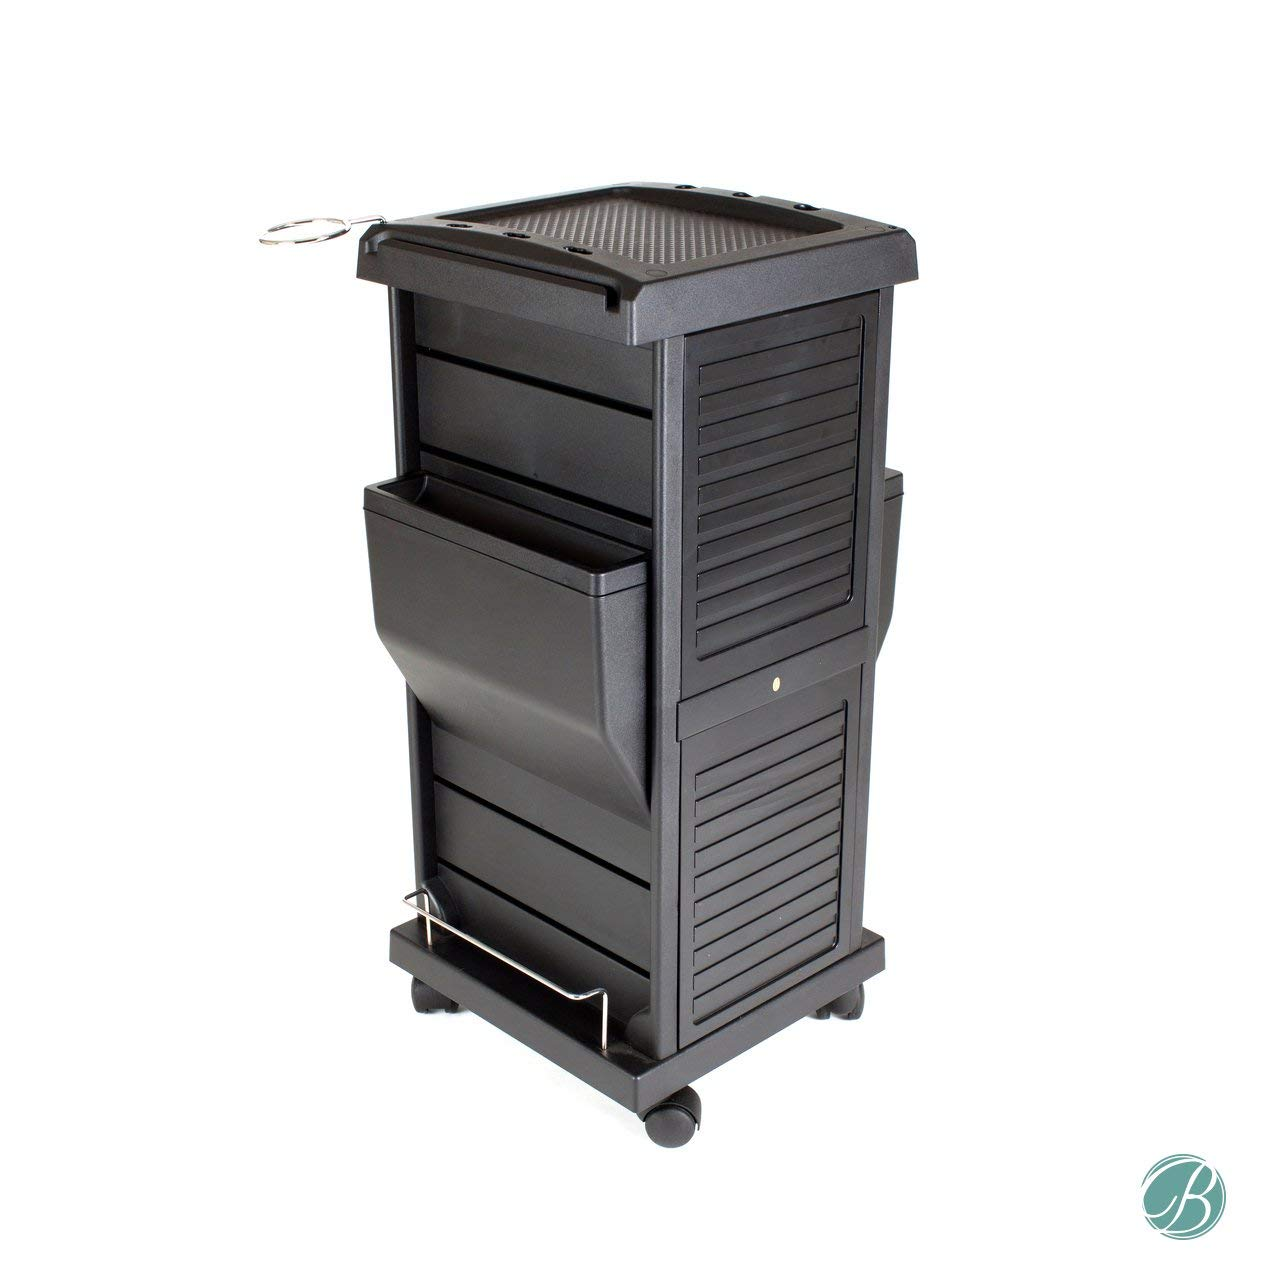 Claire Lockable Salon Trolley Cart Perfect for Hair Salon,Tattoo Studio, Spa, Office, Skincare, Day Spa Qty 1